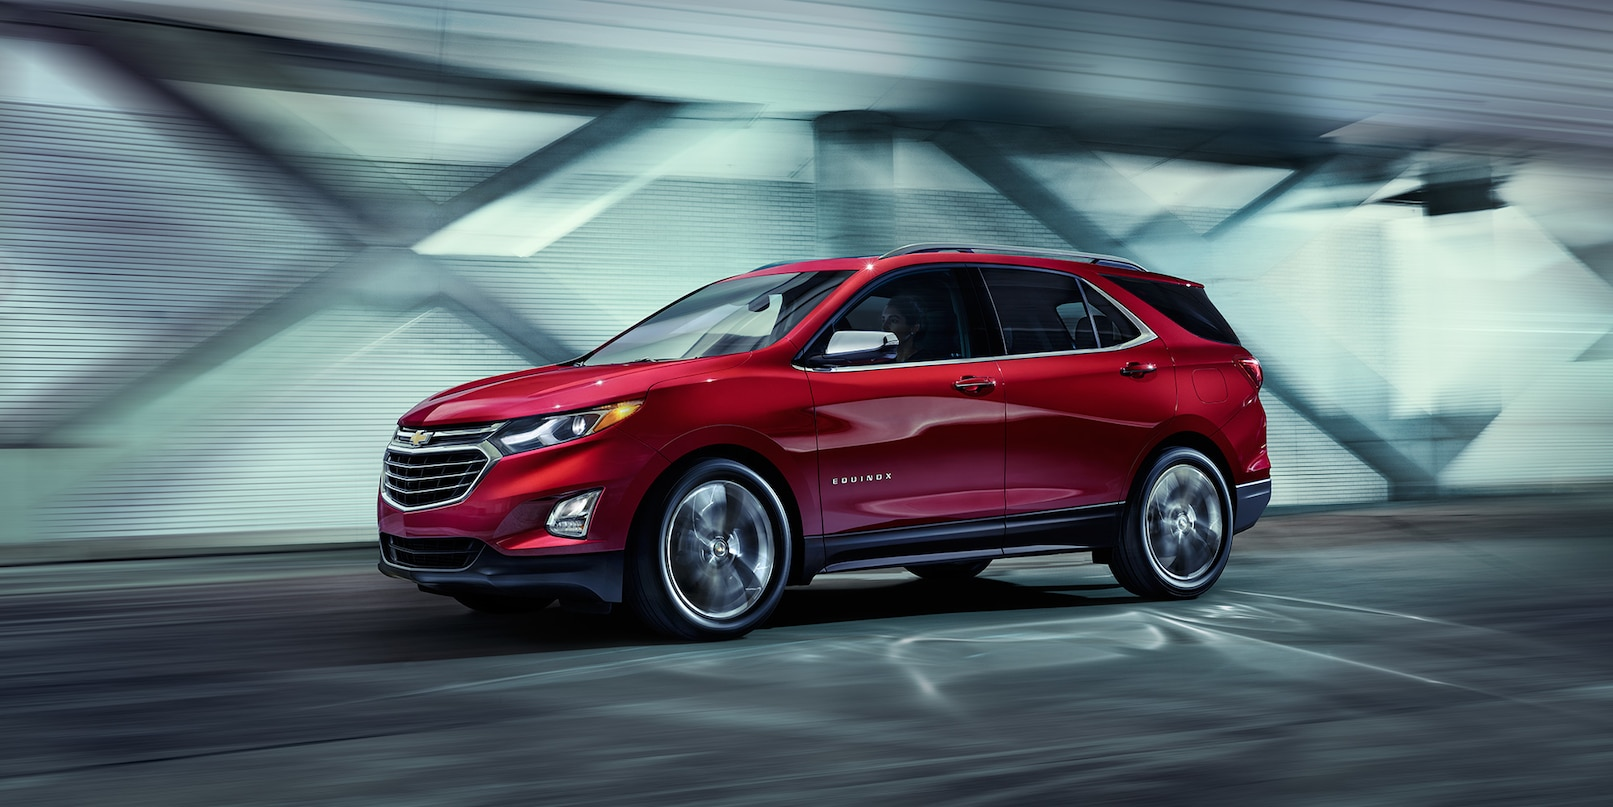 2019 Chevrolet Equinox for Sale near Dearborn, MI